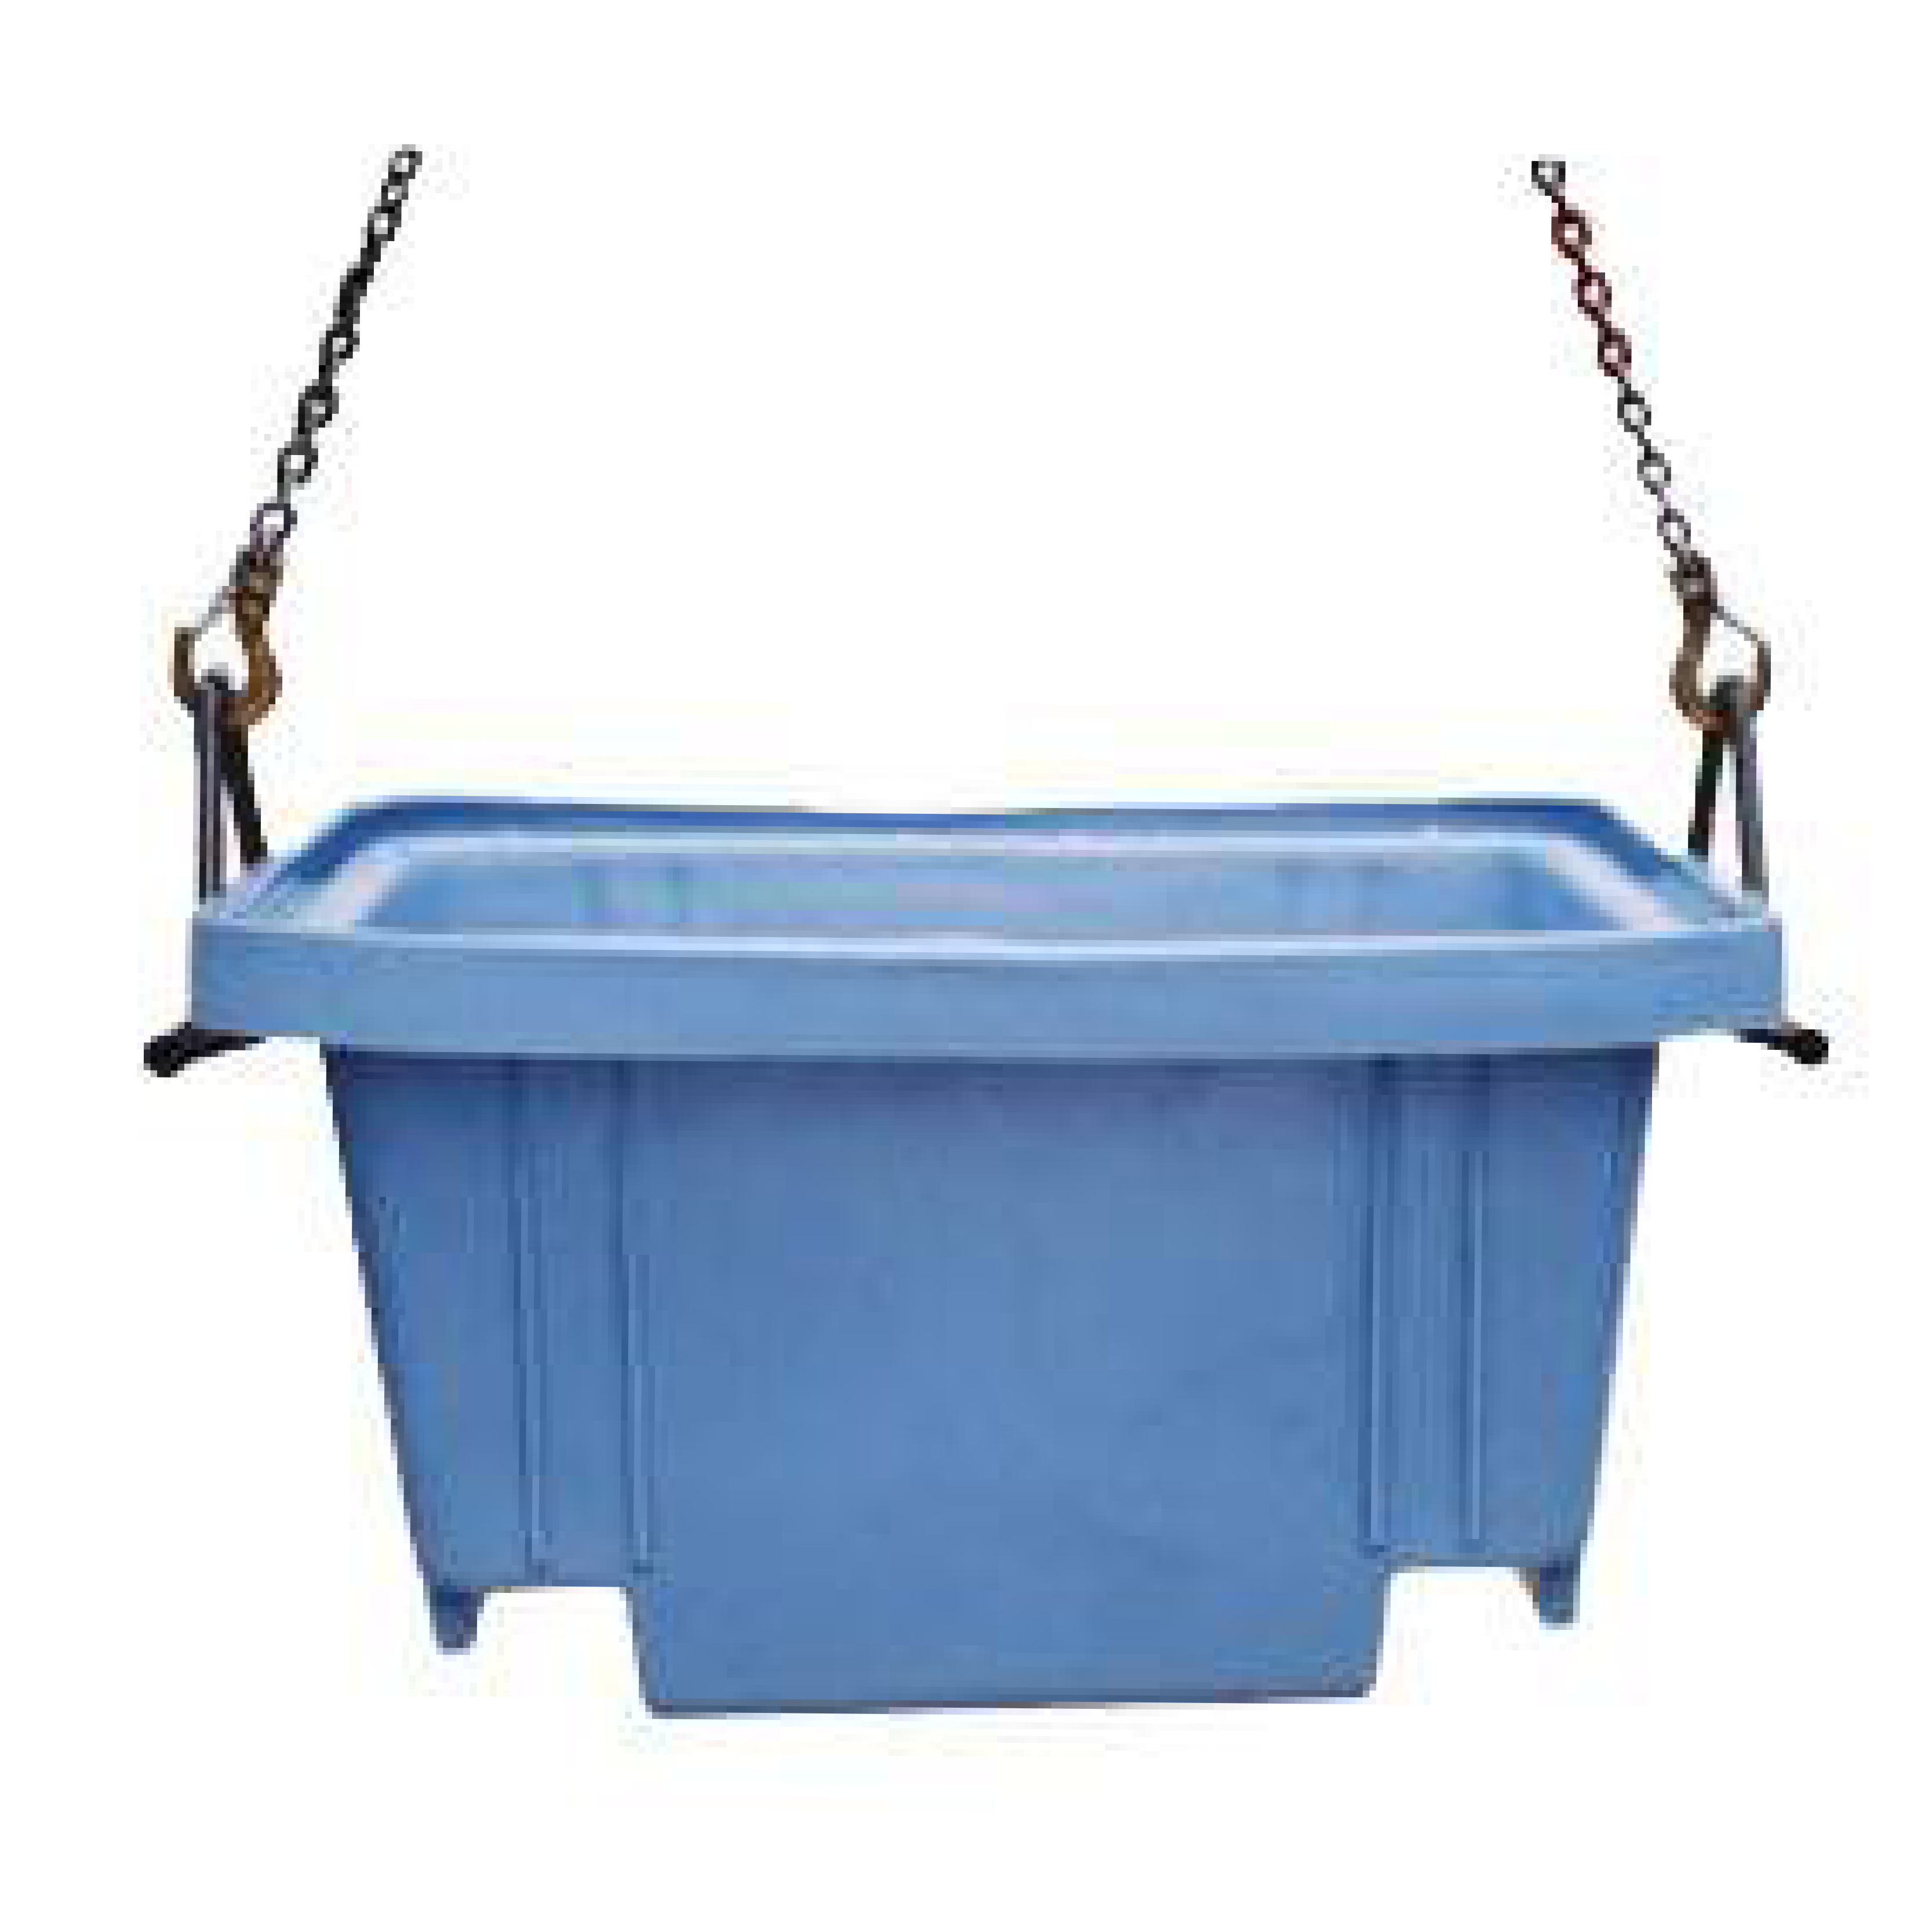 250 Litre Universal Mortar Tubs for Crane Or Fork Lifting